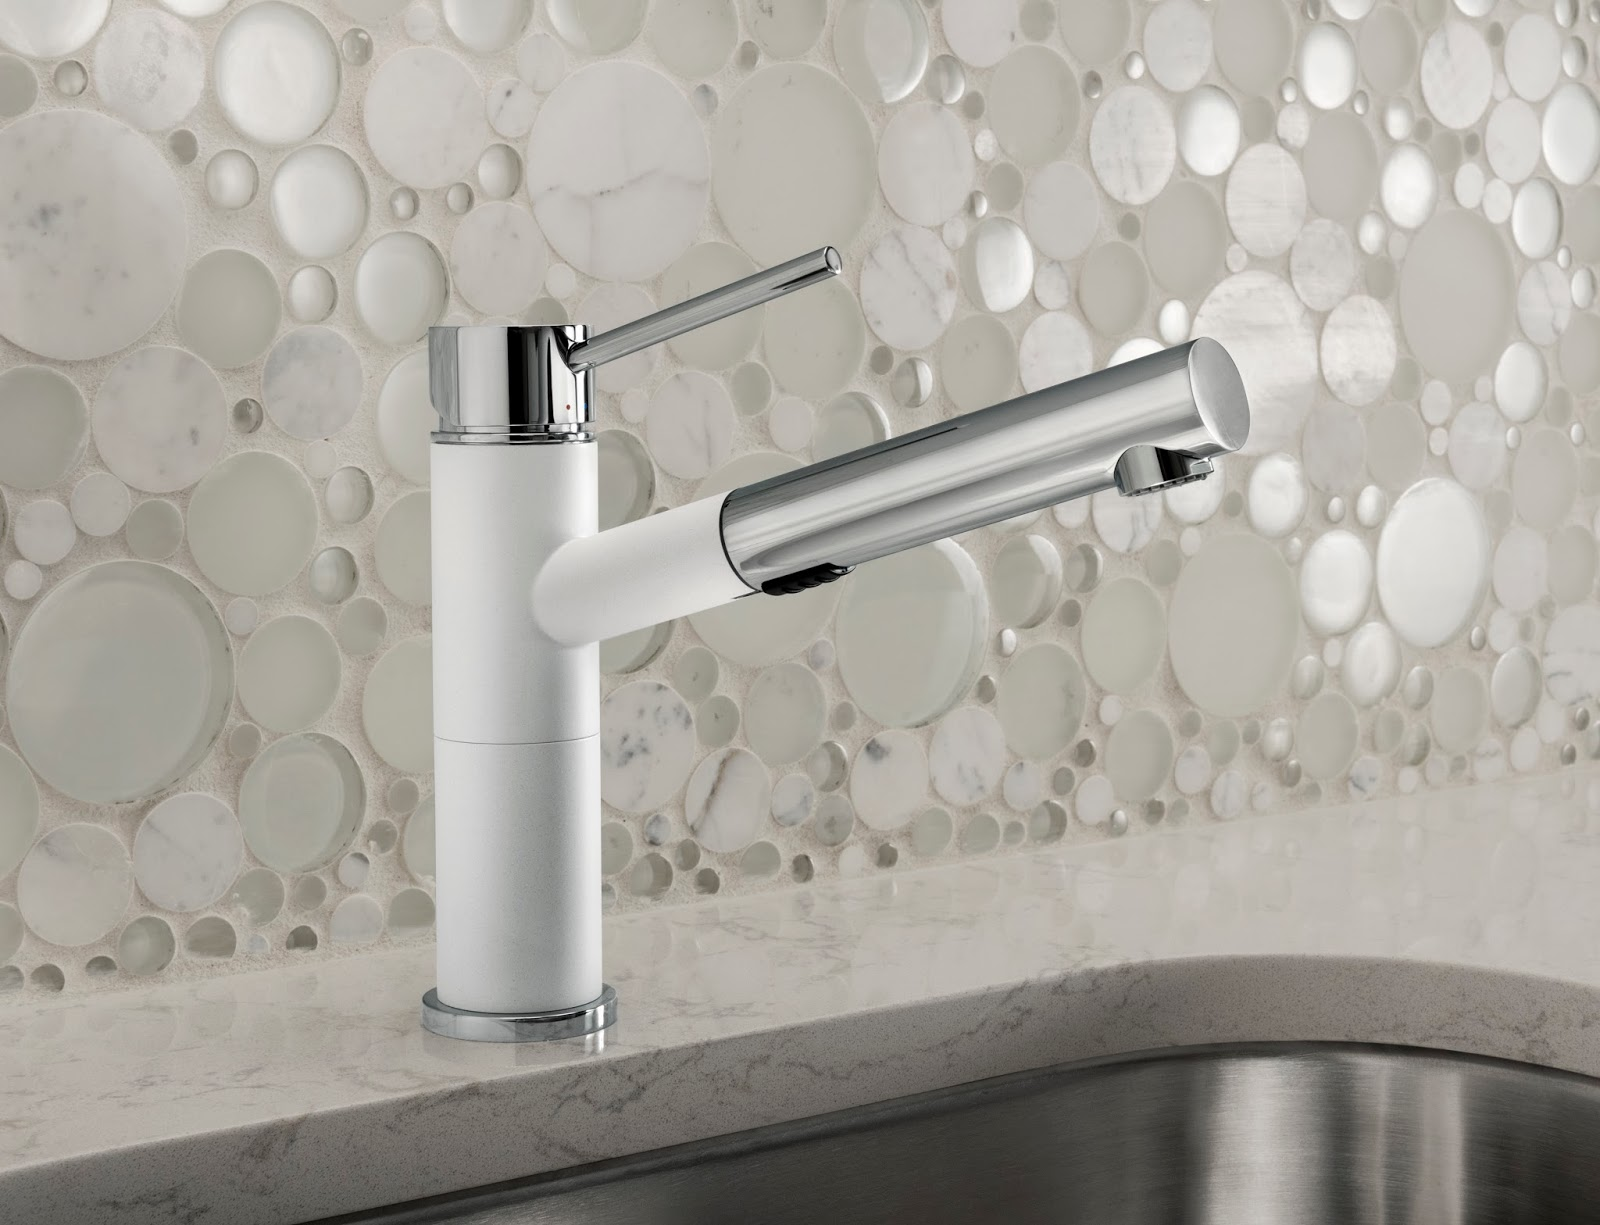 new to gl used of either faucet sg hand spout blanco for feature us apron soap expands line decorative ssing dishwashing the an liquid elongated blog convenience crop artona can be or match and a dispensers